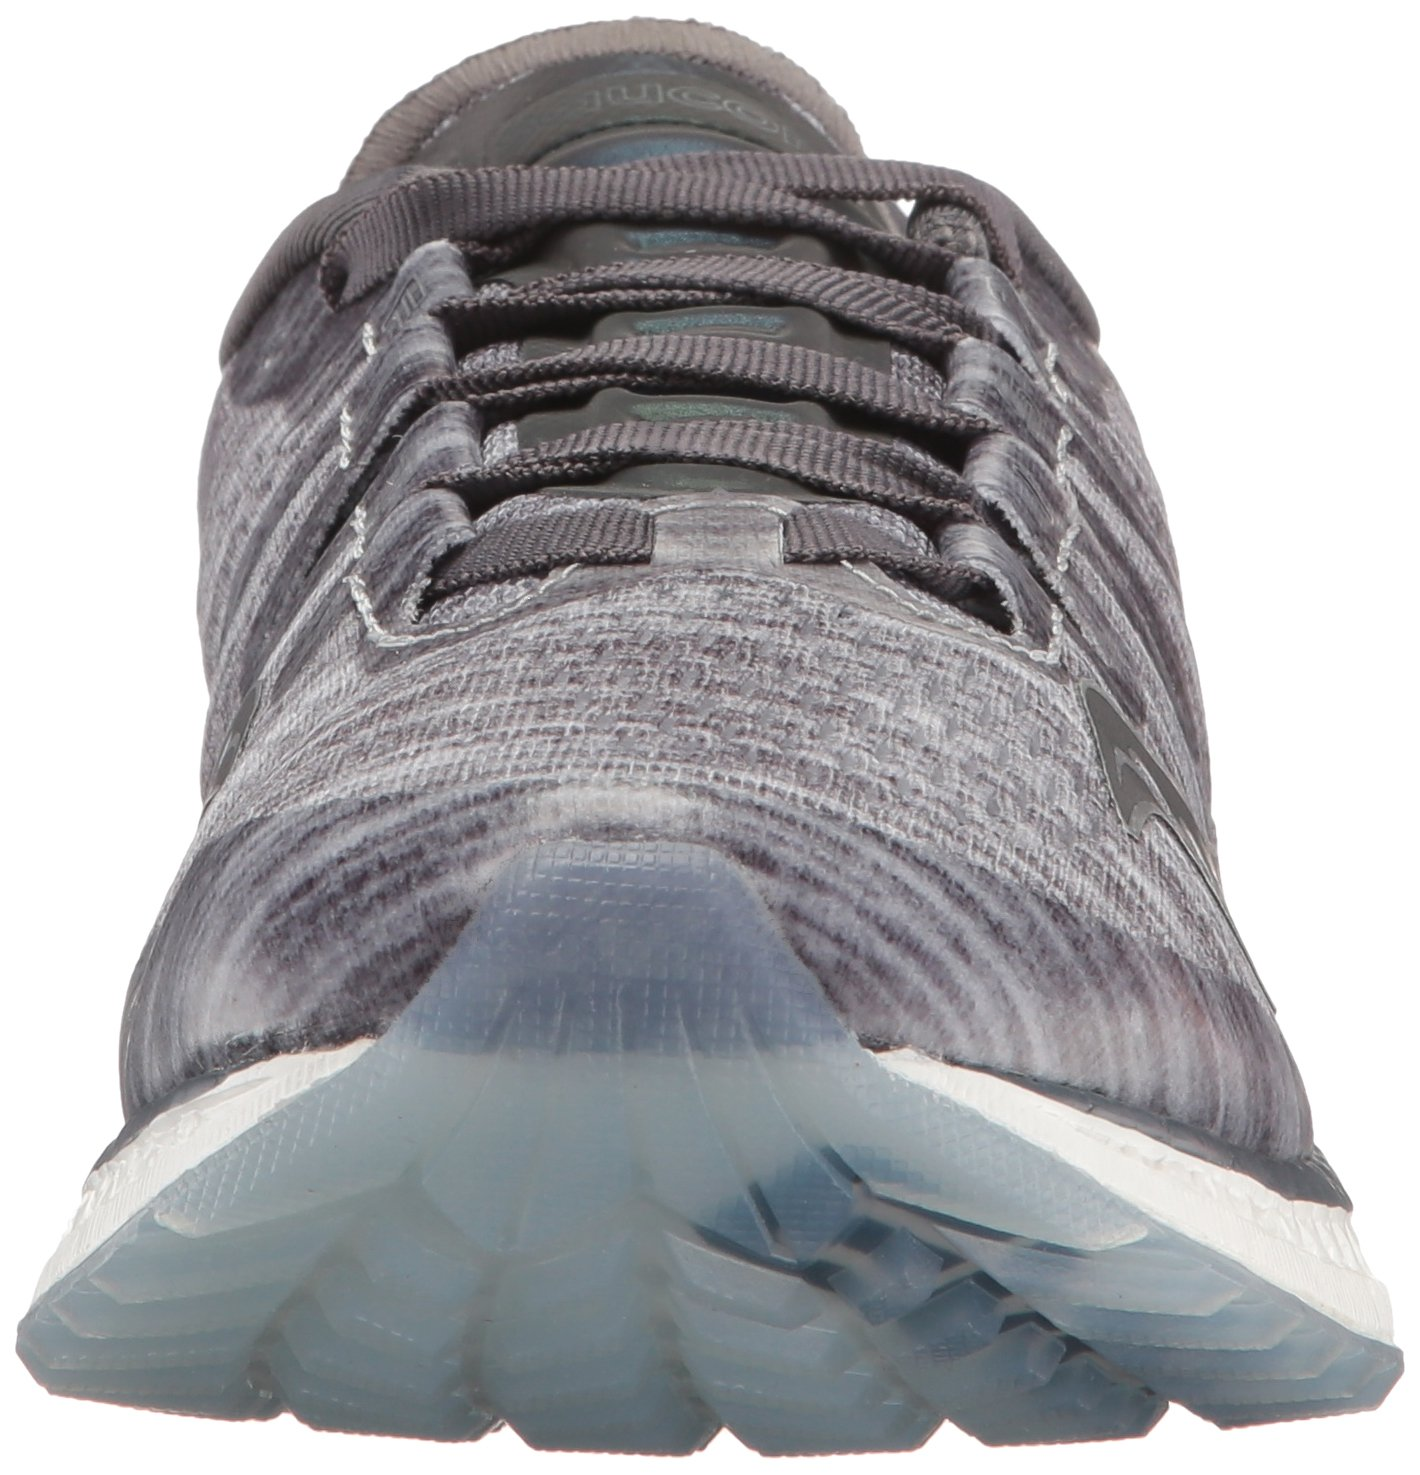 Saucony Women's Freedom ISO B(M) Running Shoe B01MU4DAY8 12 B(M) ISO US|Grey 3d4560